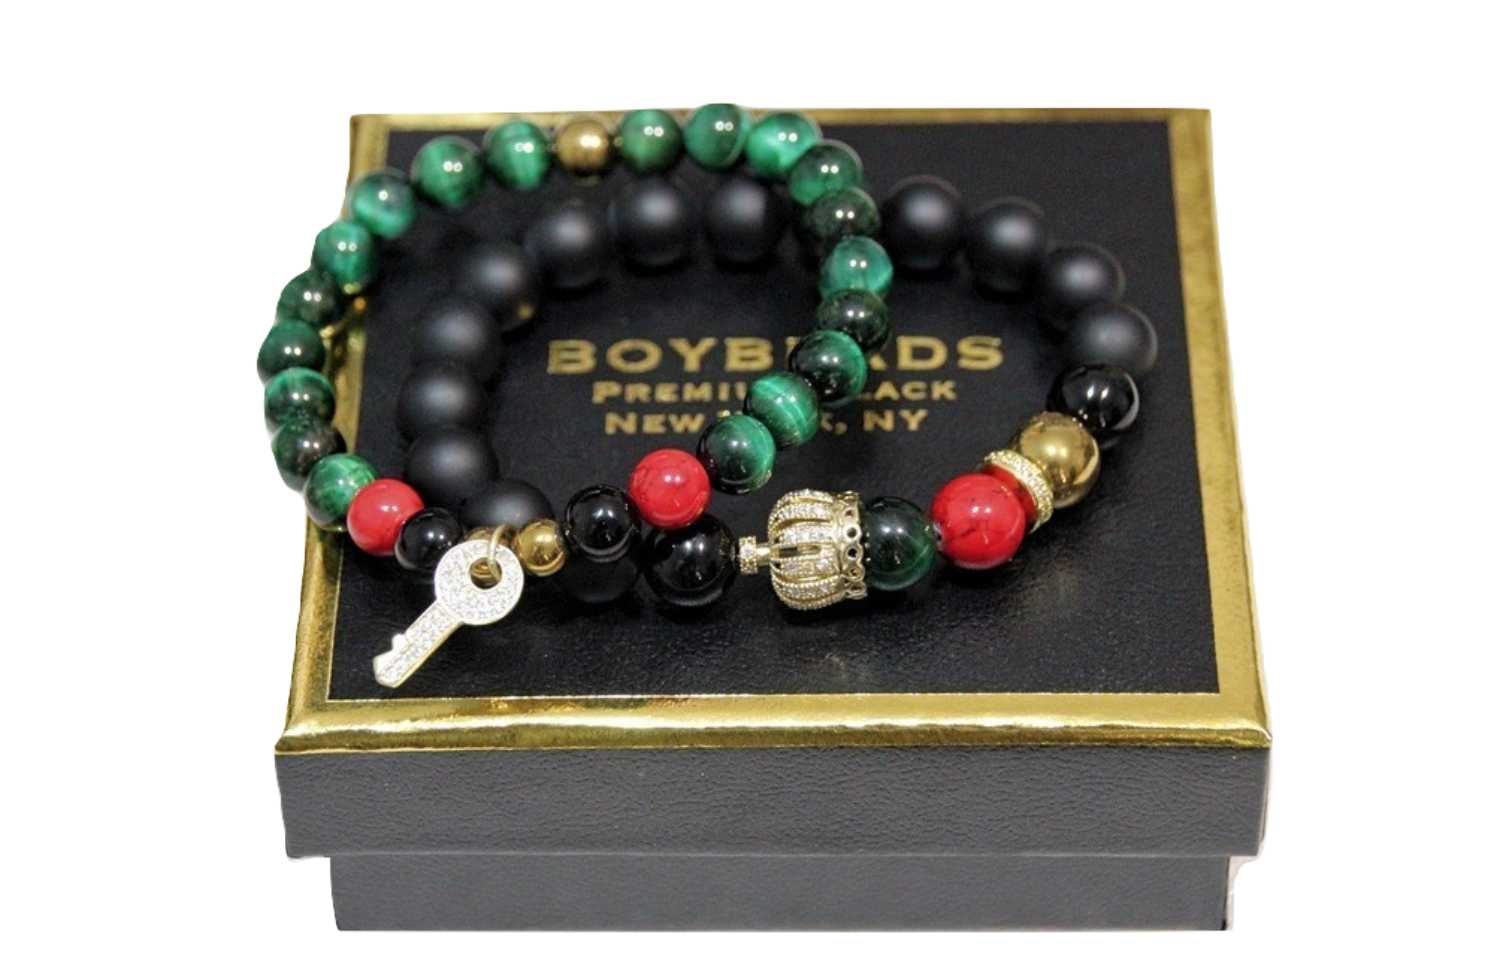 gold-crown-king-22abraham-gold-22-boybeads-new-york-juneteenth-charity-nmaahc-crowned-black-onyx-bead-bracelet-for-guys-454-2020.png